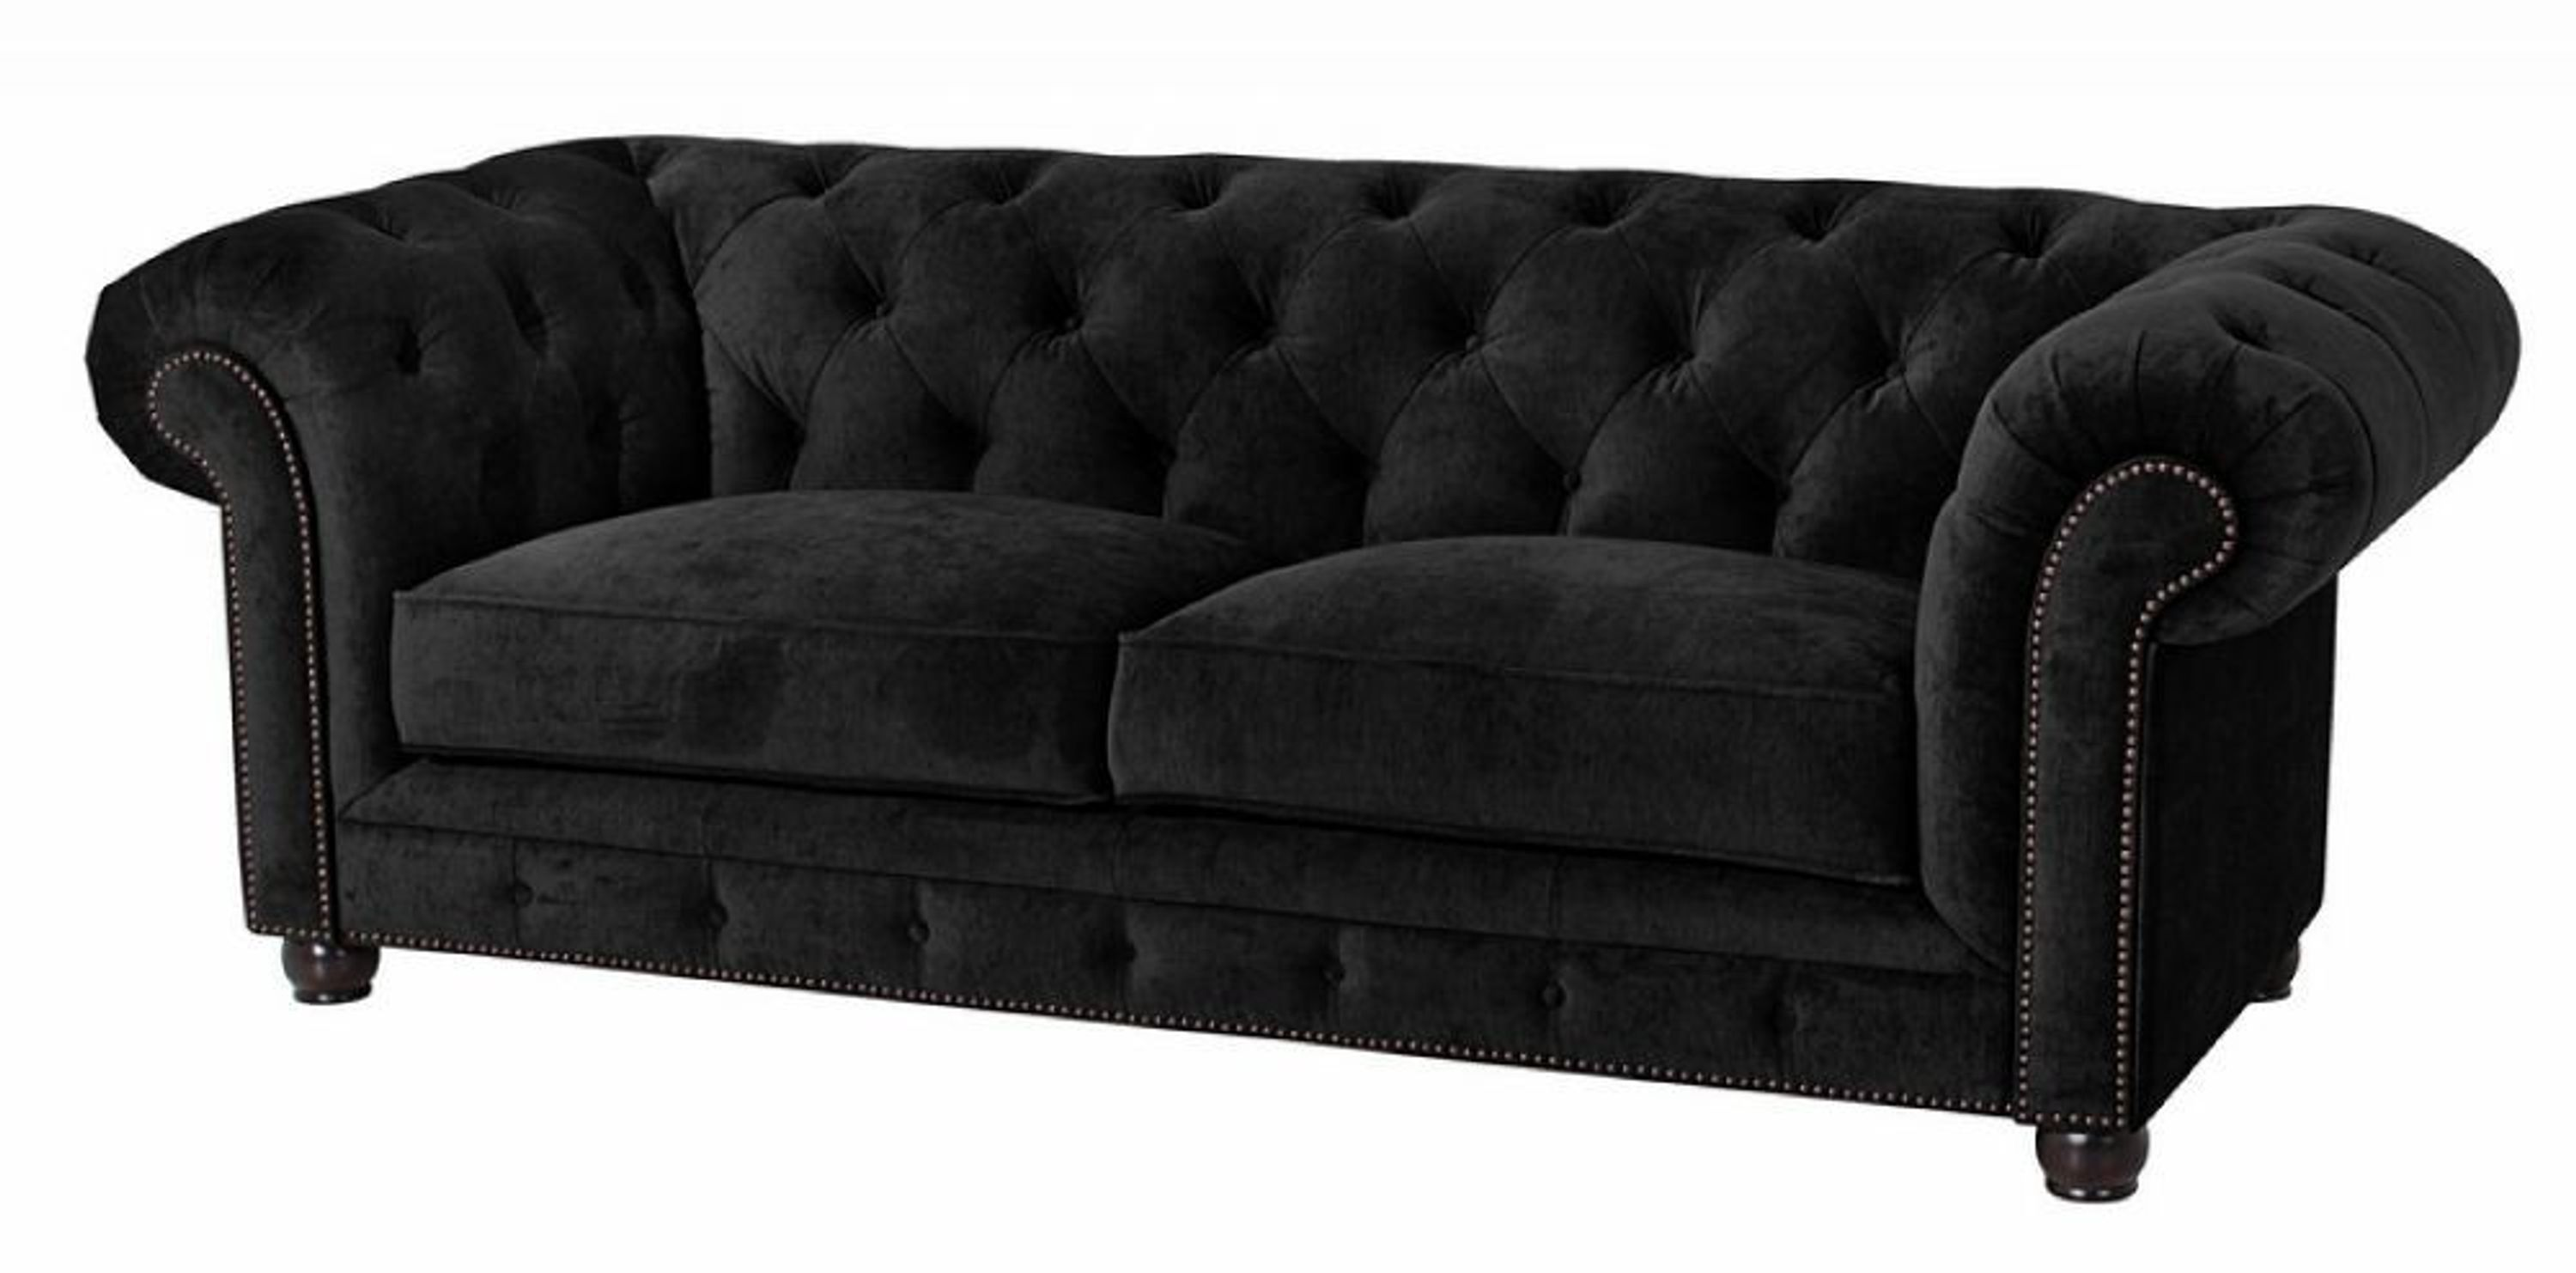 sofa 2 5 sitz orleans samtvelours schwarz kaufen bei. Black Bedroom Furniture Sets. Home Design Ideas